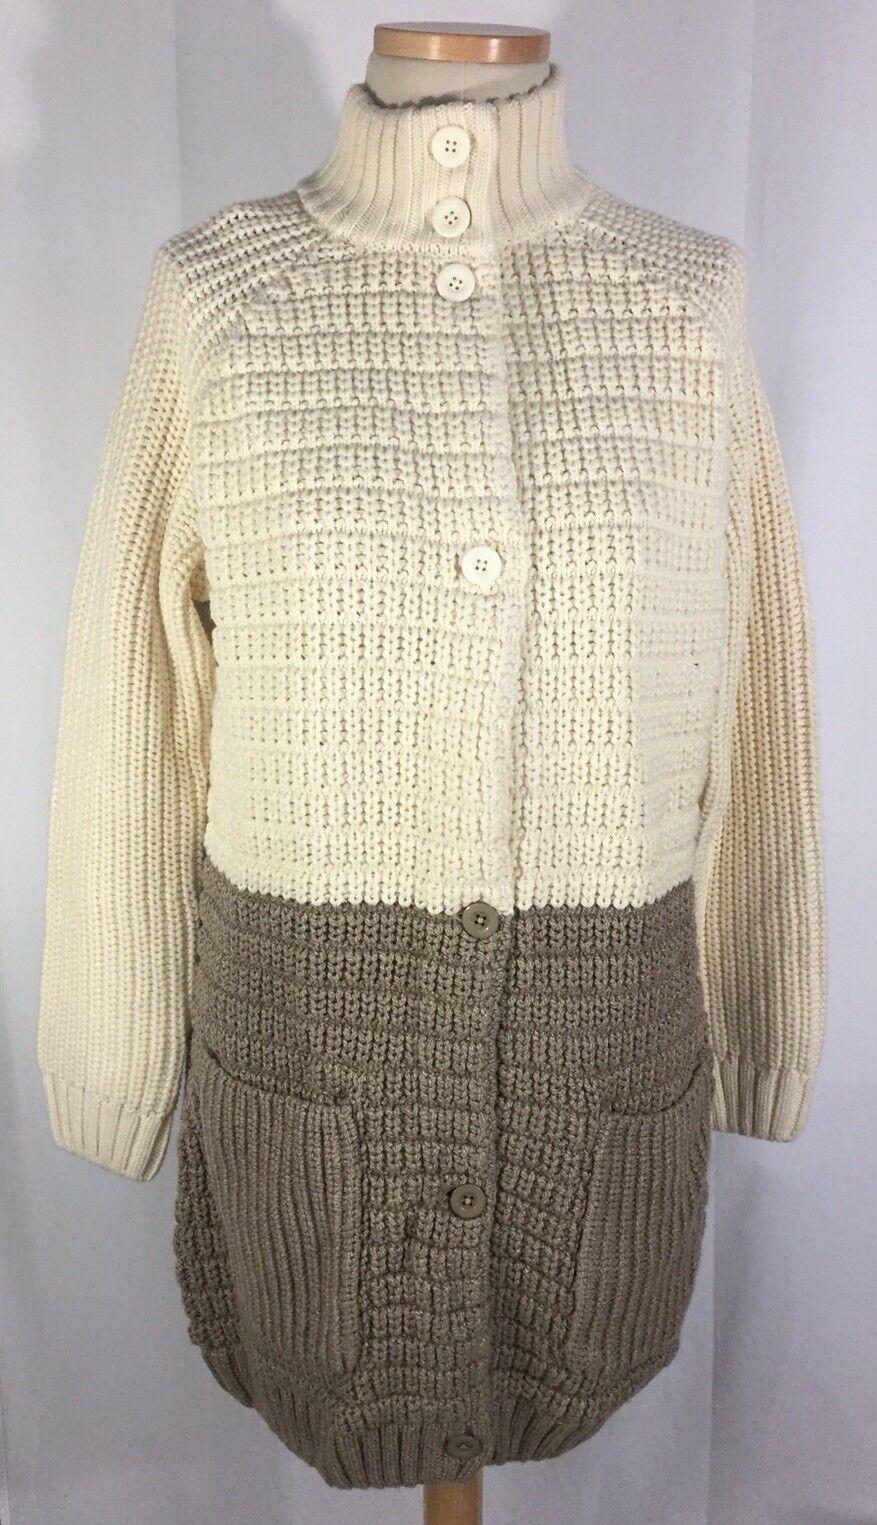 New Hanna Andersson Ivory Tan Two Tone Sweater Cardigan Coat sz L